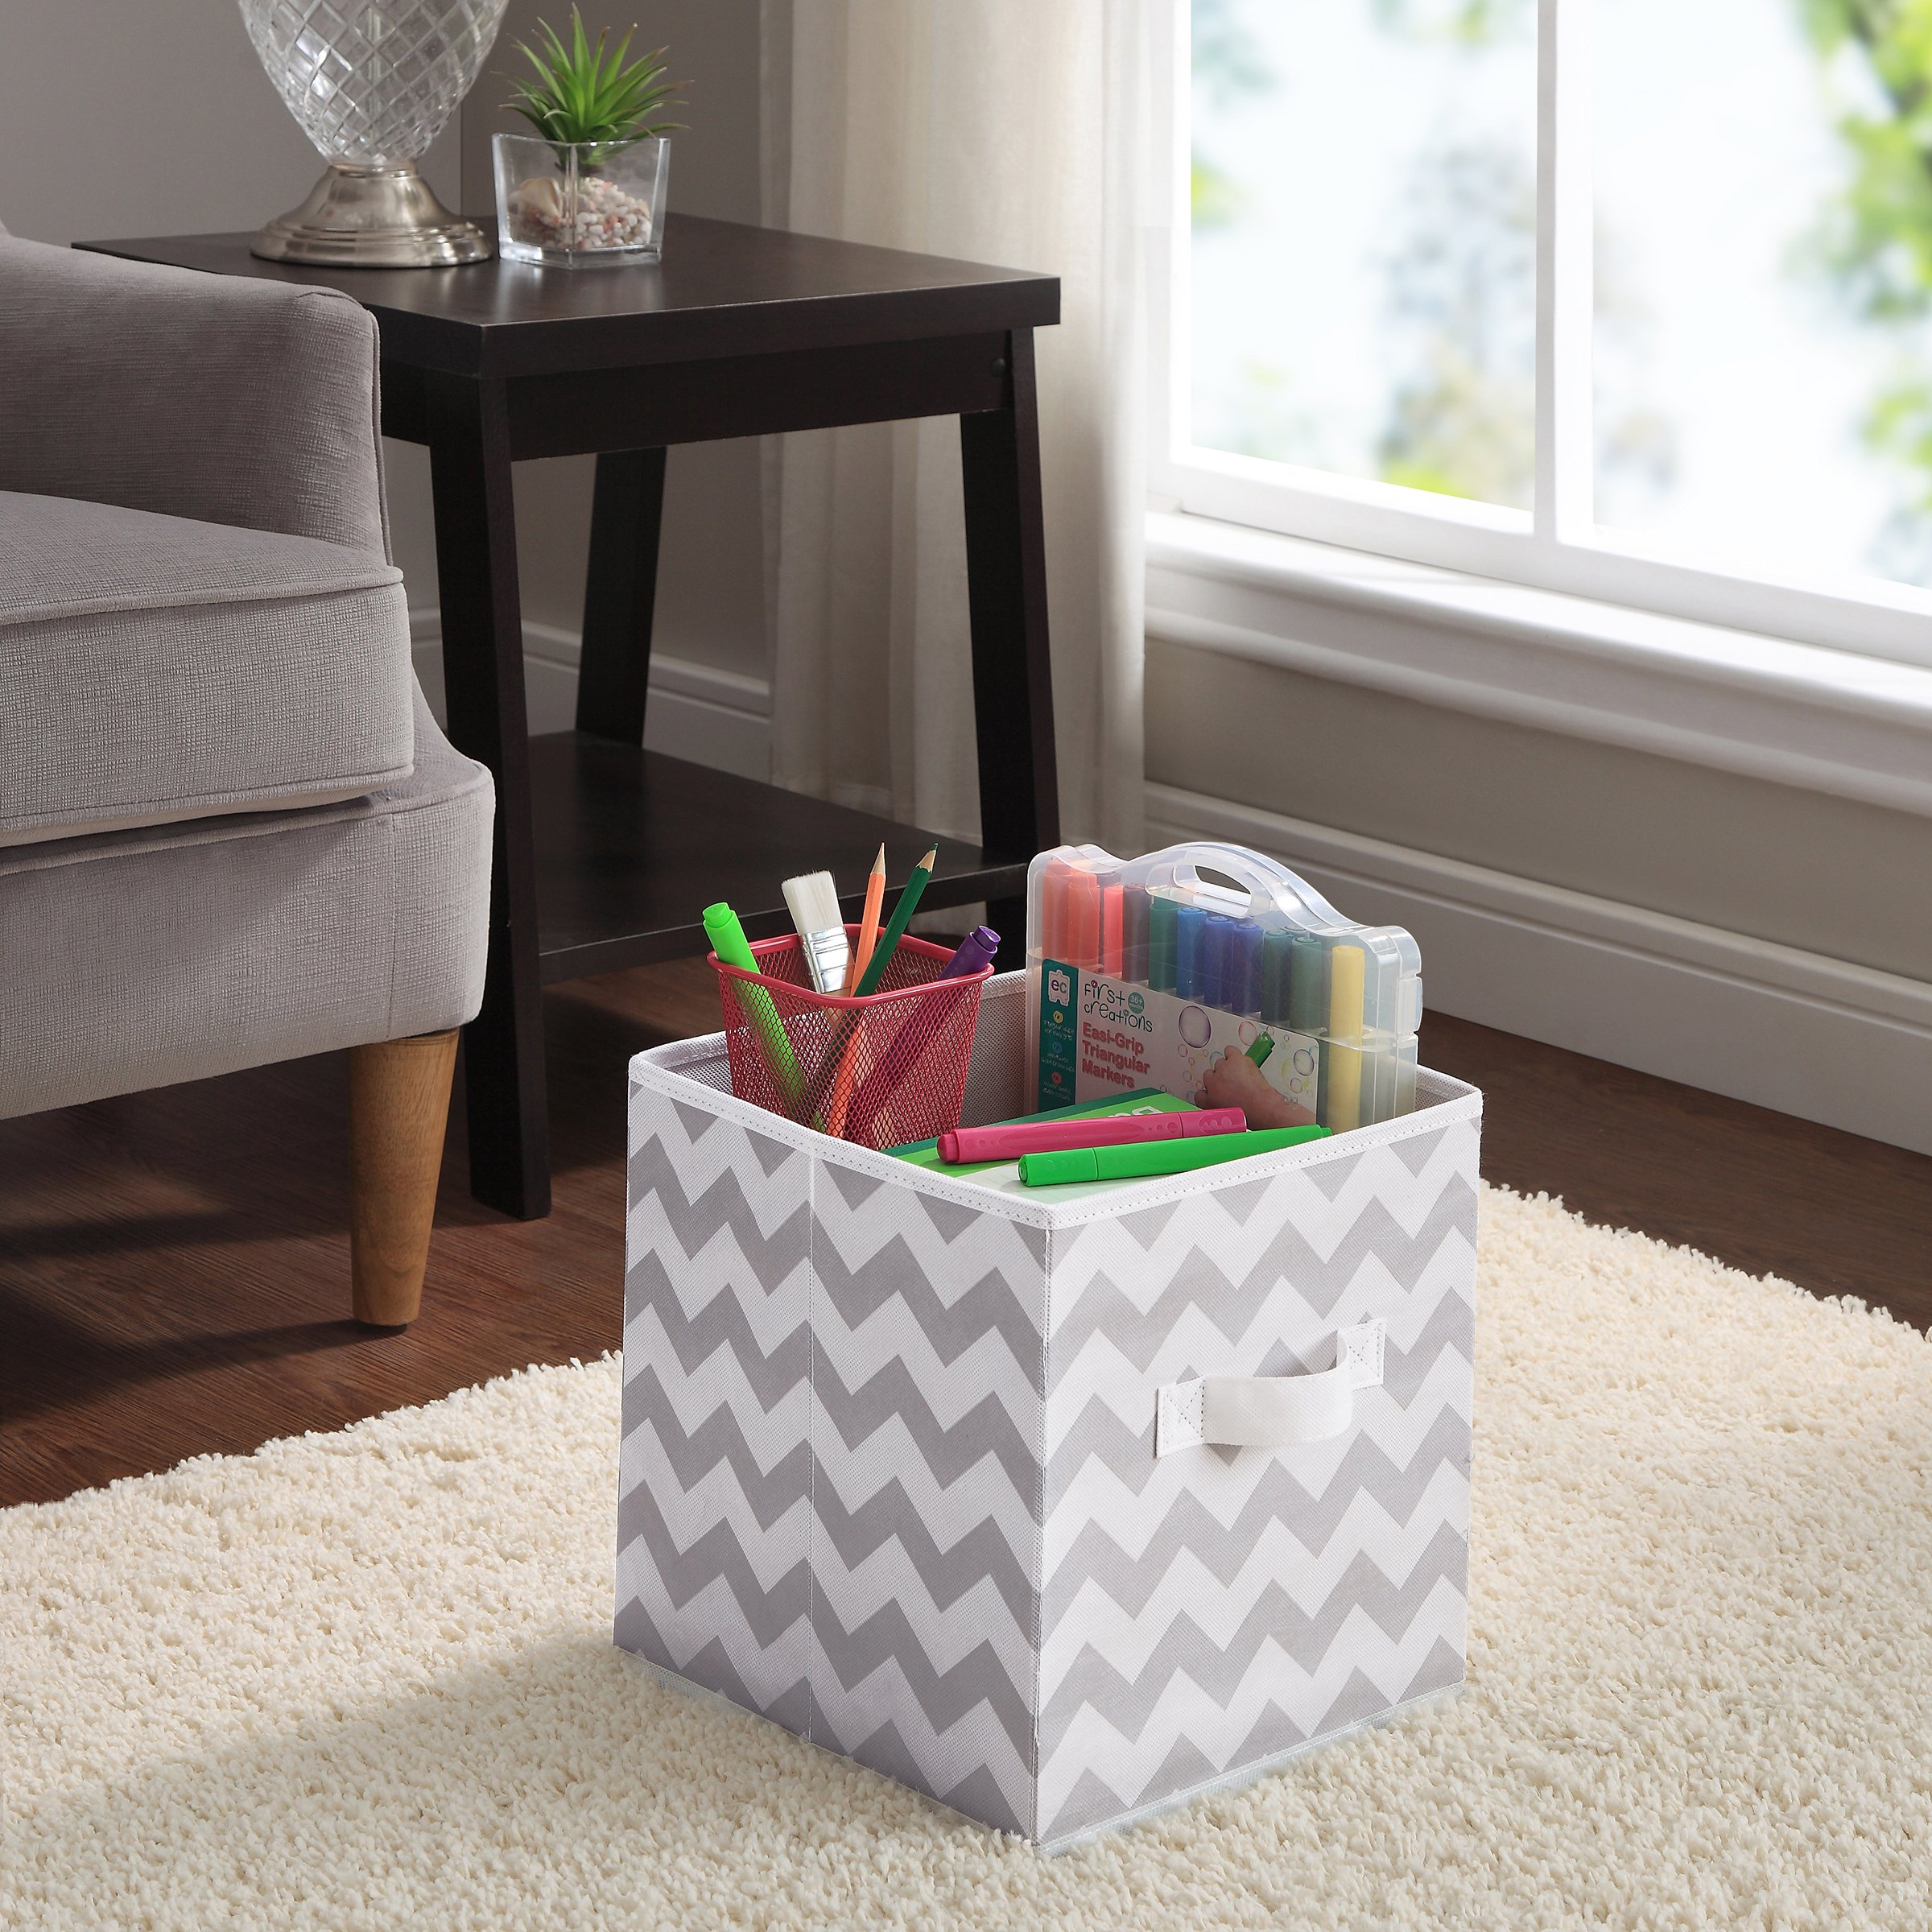 Mainstays Collapsible Storage Bin